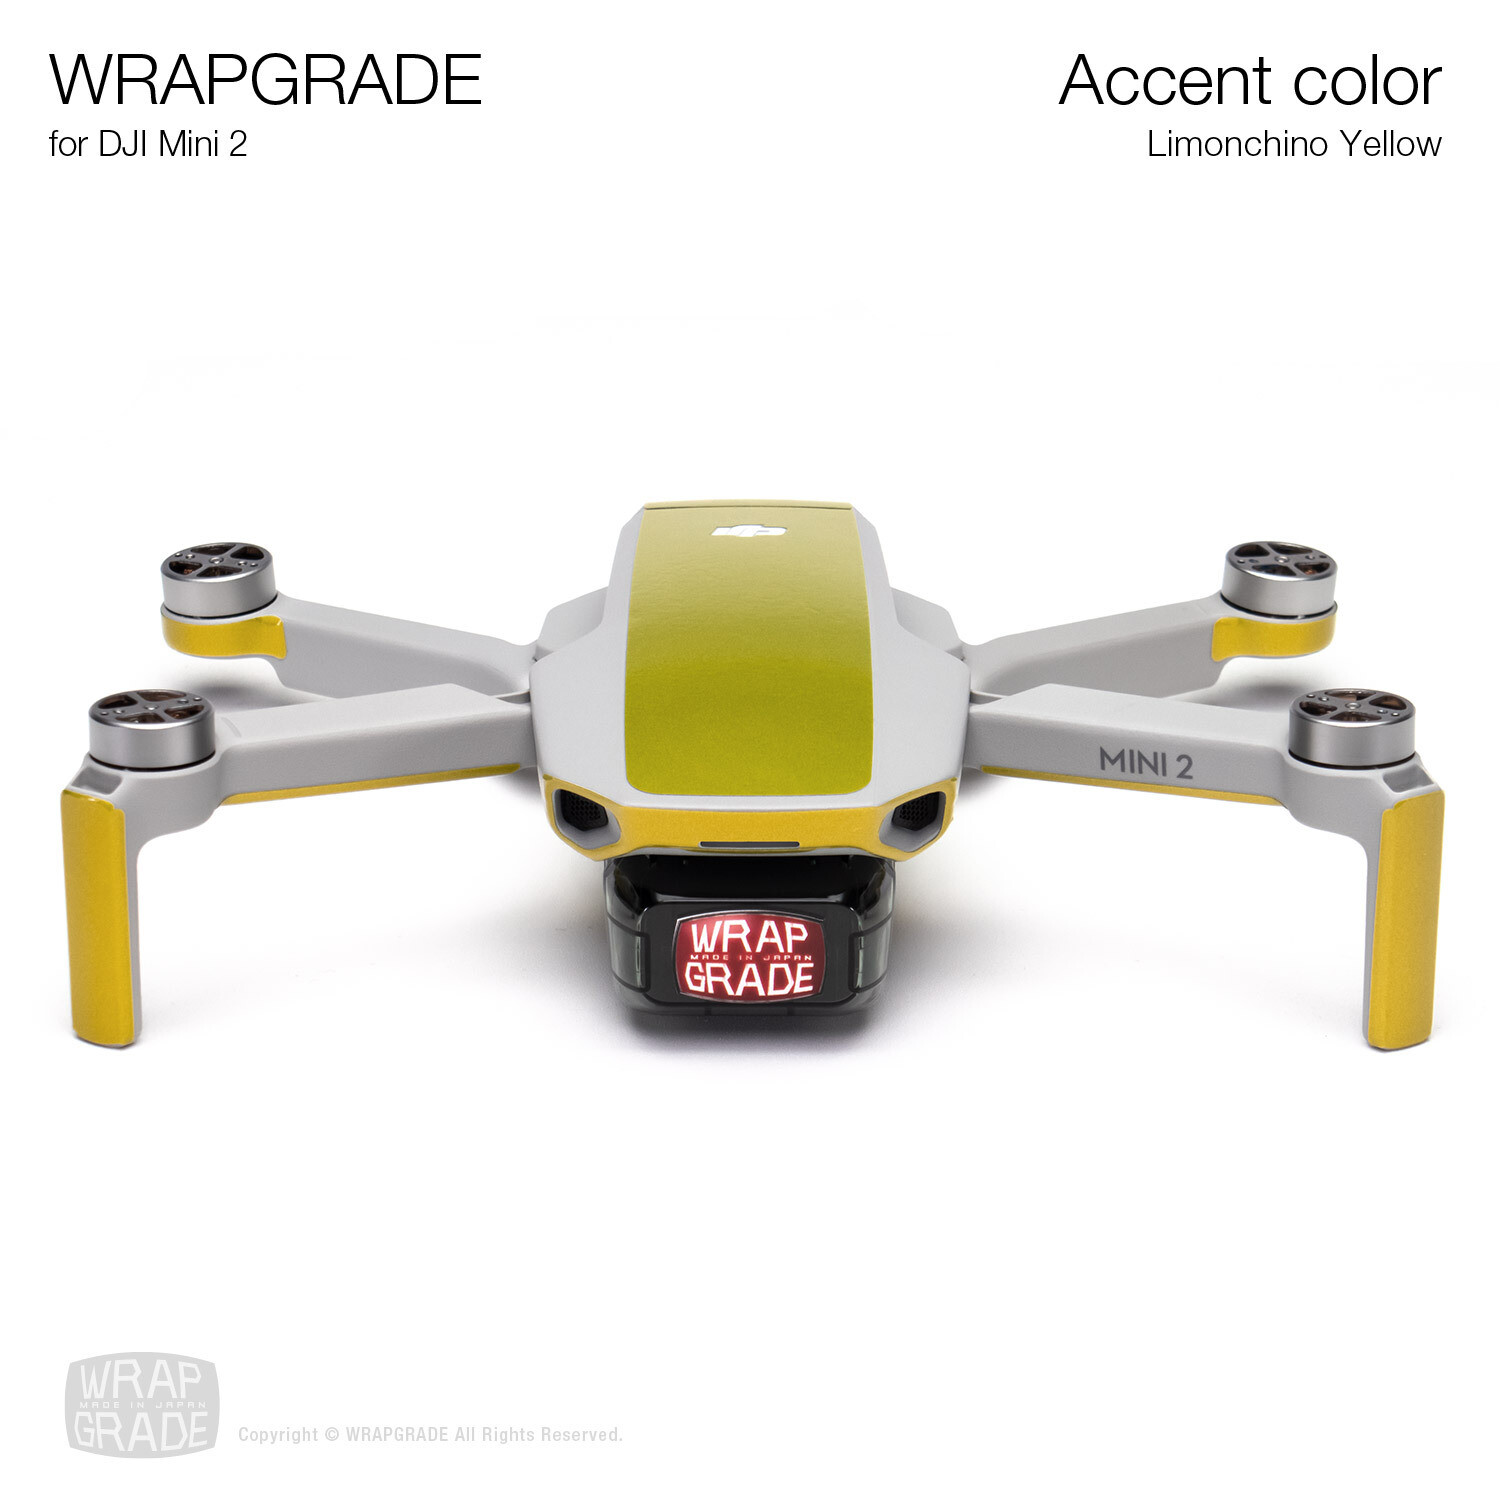 Wrapgrade Poly Skin for DJI Mini 2 | Accent color (LIMONCINO YELLOW)